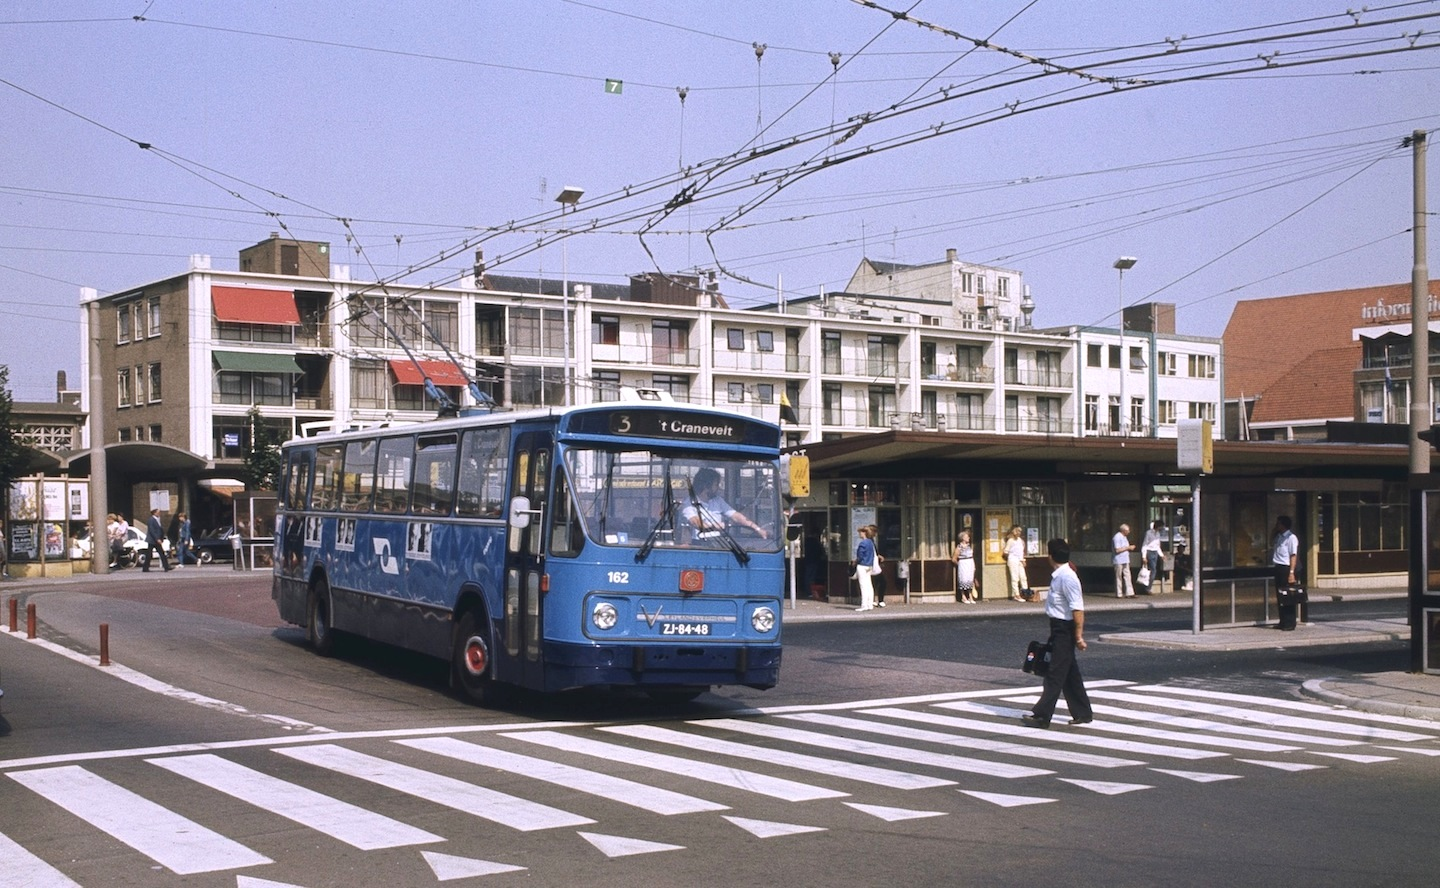 Arnhem Leyland-Verheul trolleybus 162 leaving the railway station in 1983. Photo by Steve Morgan.